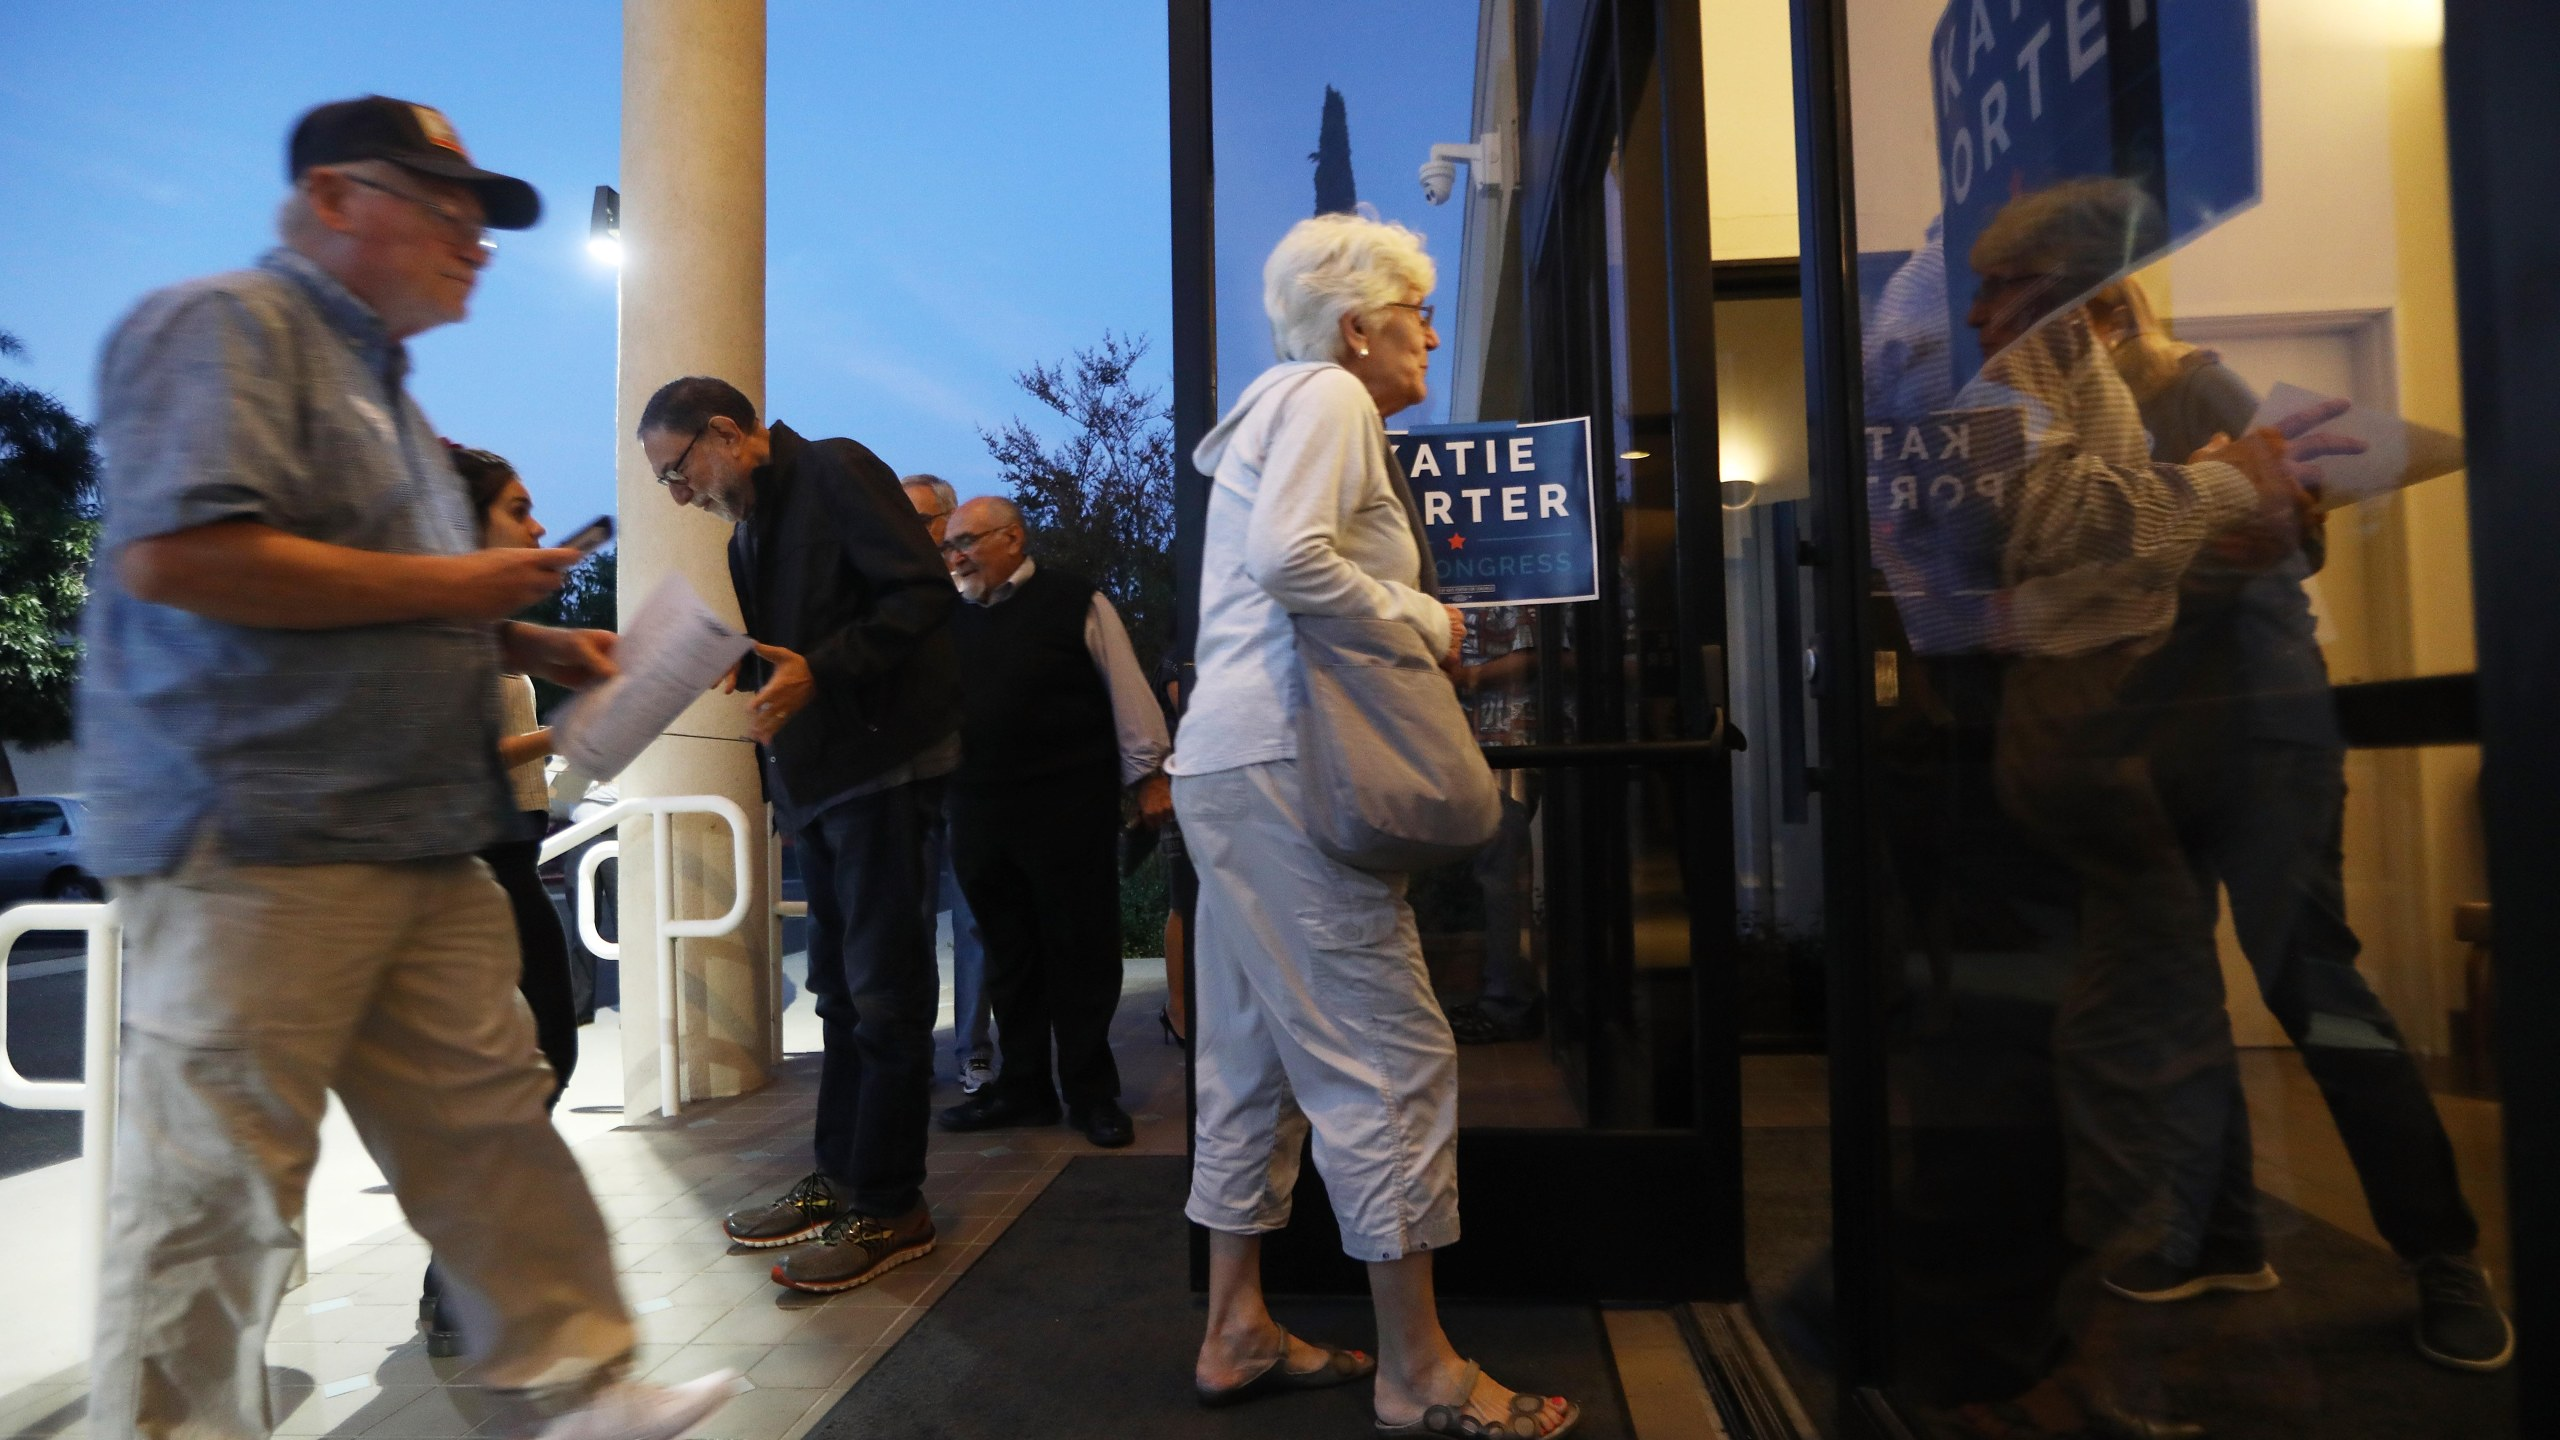 Voters enter before the start of a campaign town hall with Democratic congressional candidate Katie Porter (CA-45) in Tustin on on Oct. 22, 2018. (Credit: Mario Tama/Getty Images)